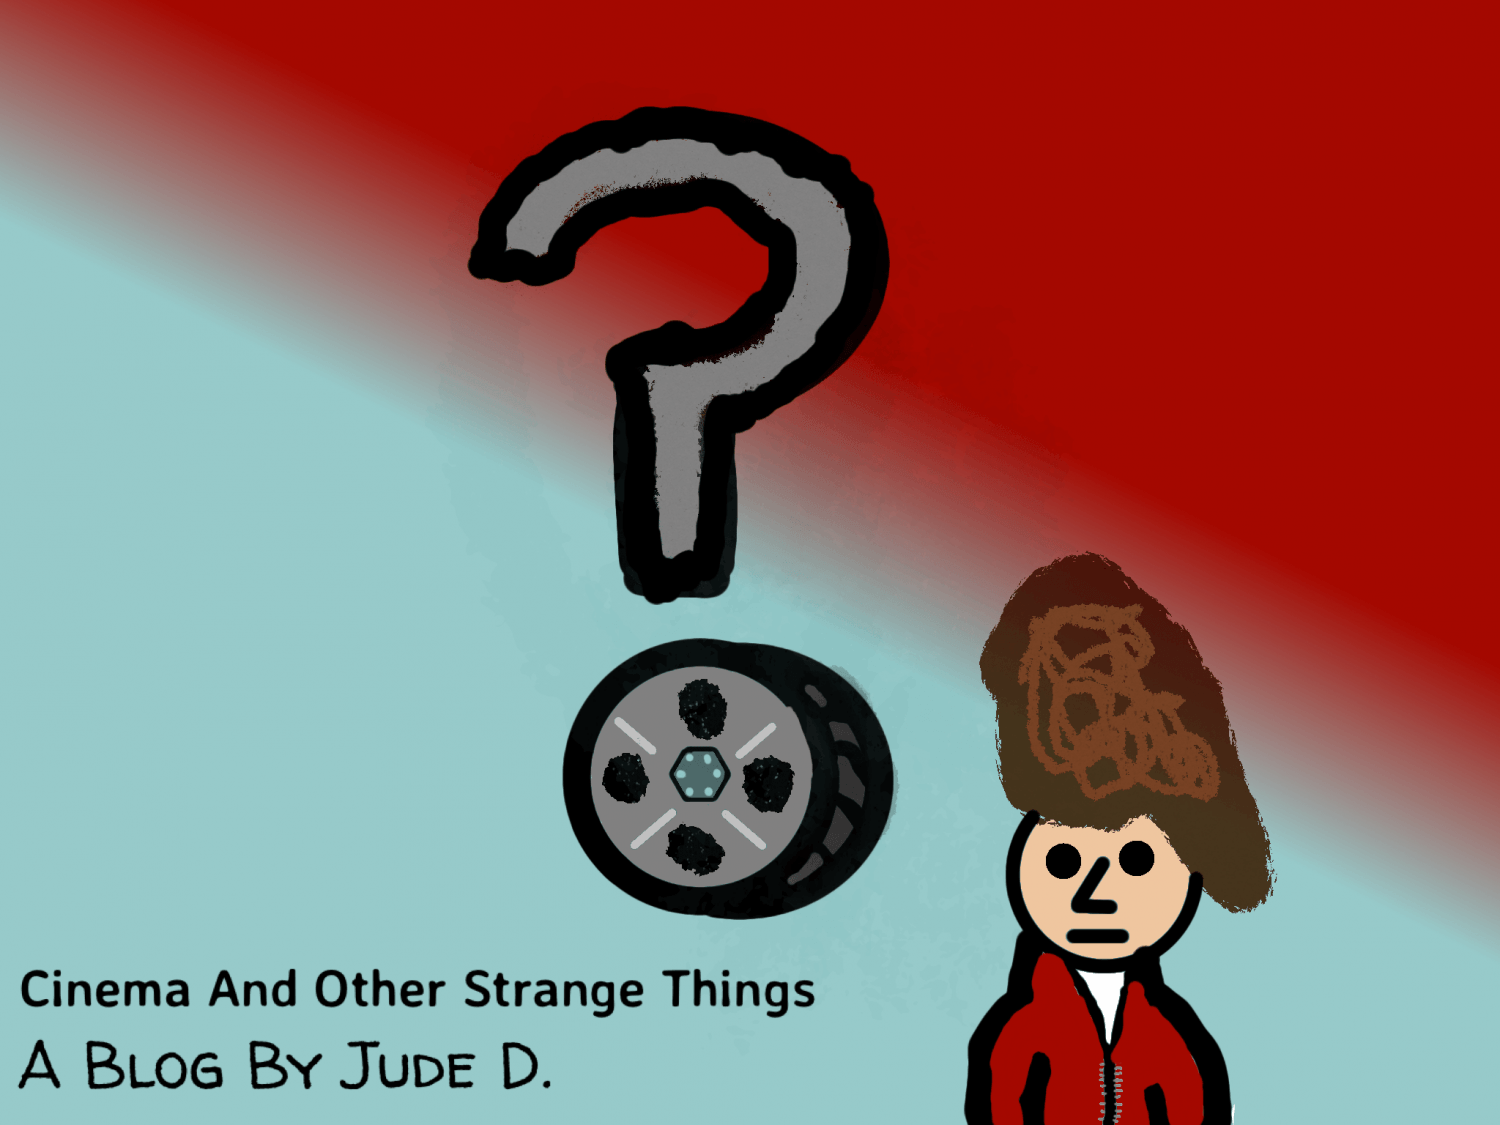 Cinema And Other Strange Things